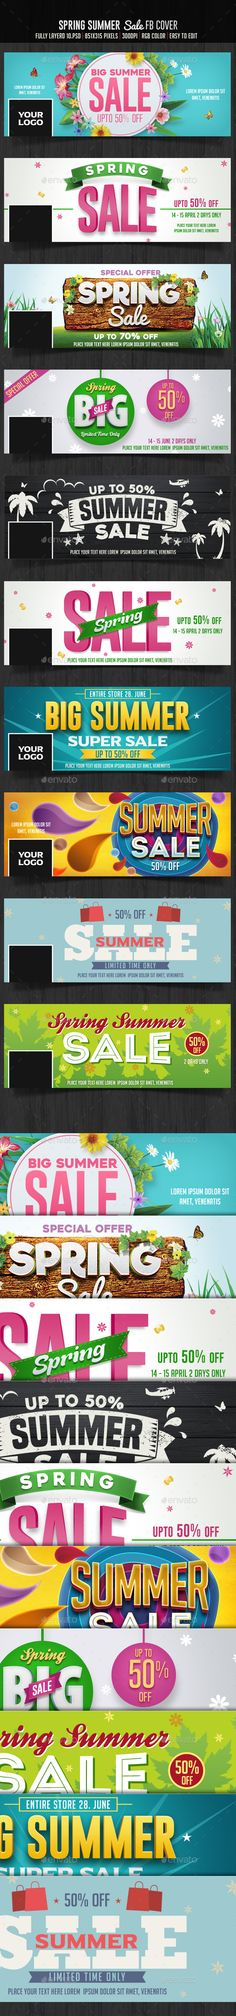 10 Spring Summer Sale Facebook Cover